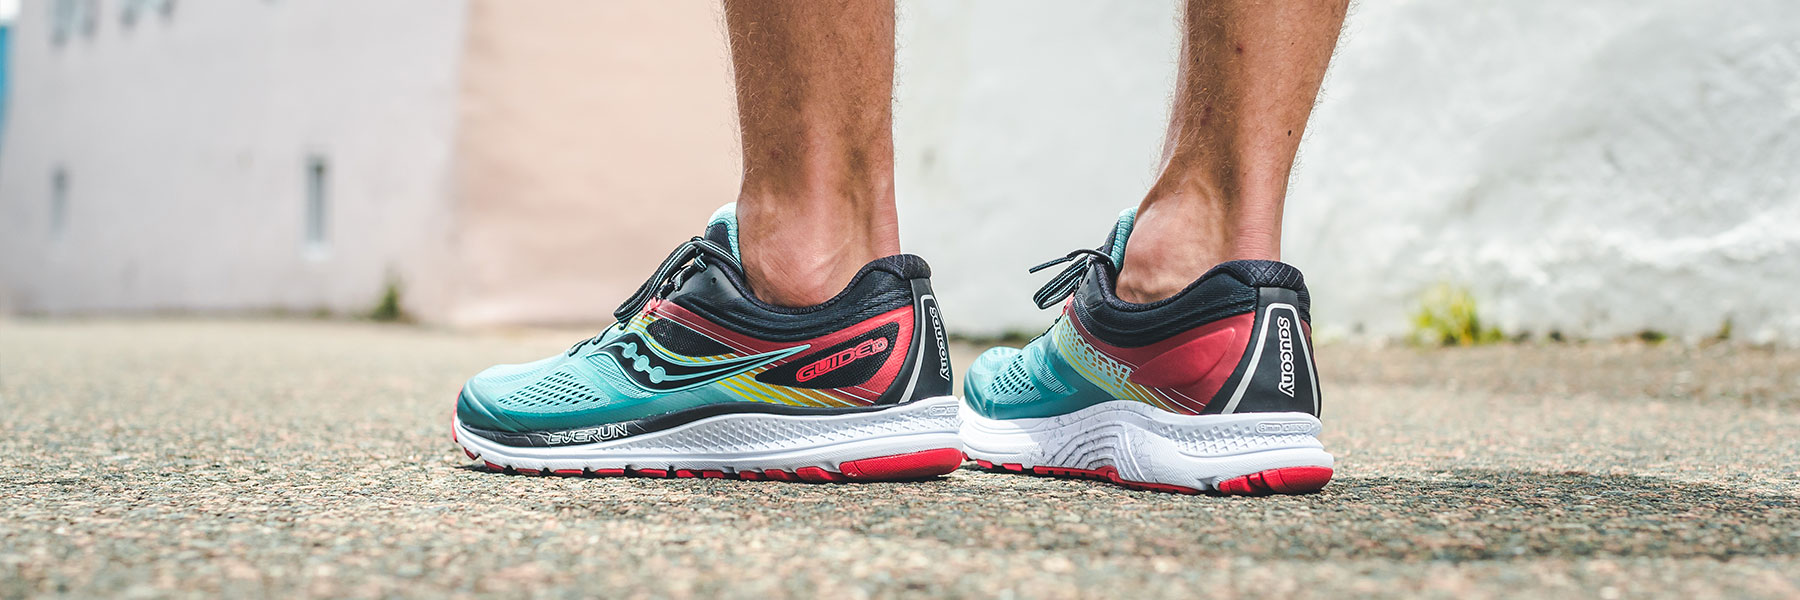 saucony everun guide 10 womens